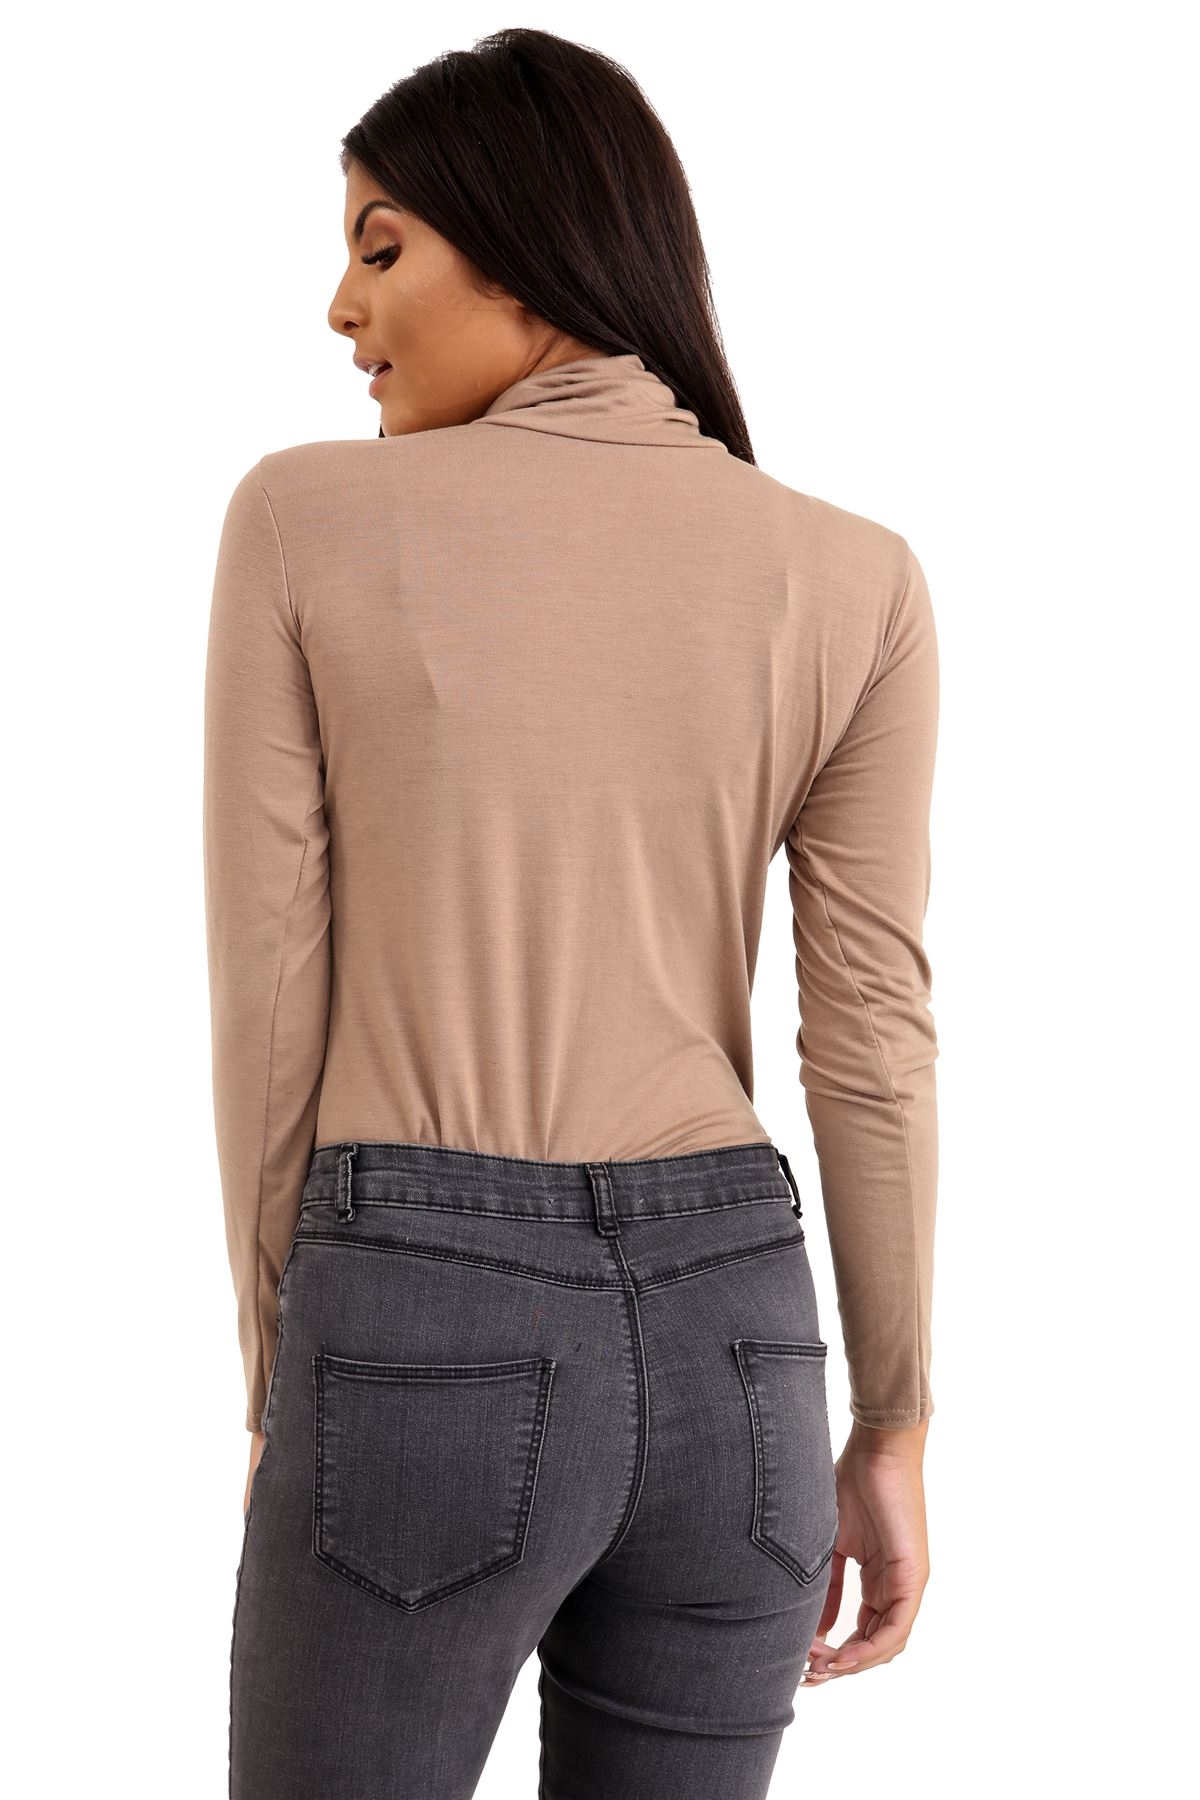 New-Ladies-Long-Sleeve-Plain-Turtle-Polo-Roll-Neck-Stretch-Jumper-T-Shirt-TeeTop thumbnail 68